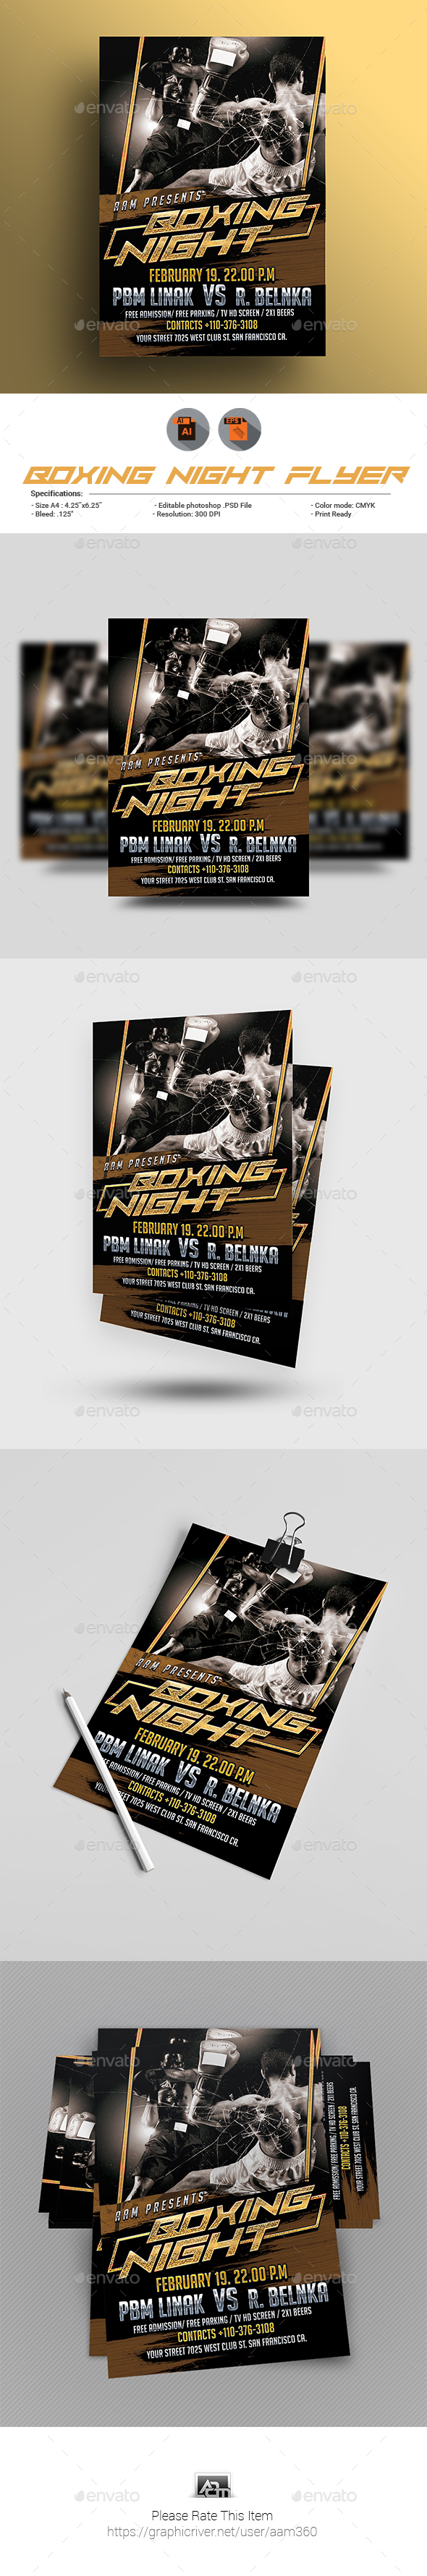 Boxing Night Flyer Template - Sports Events